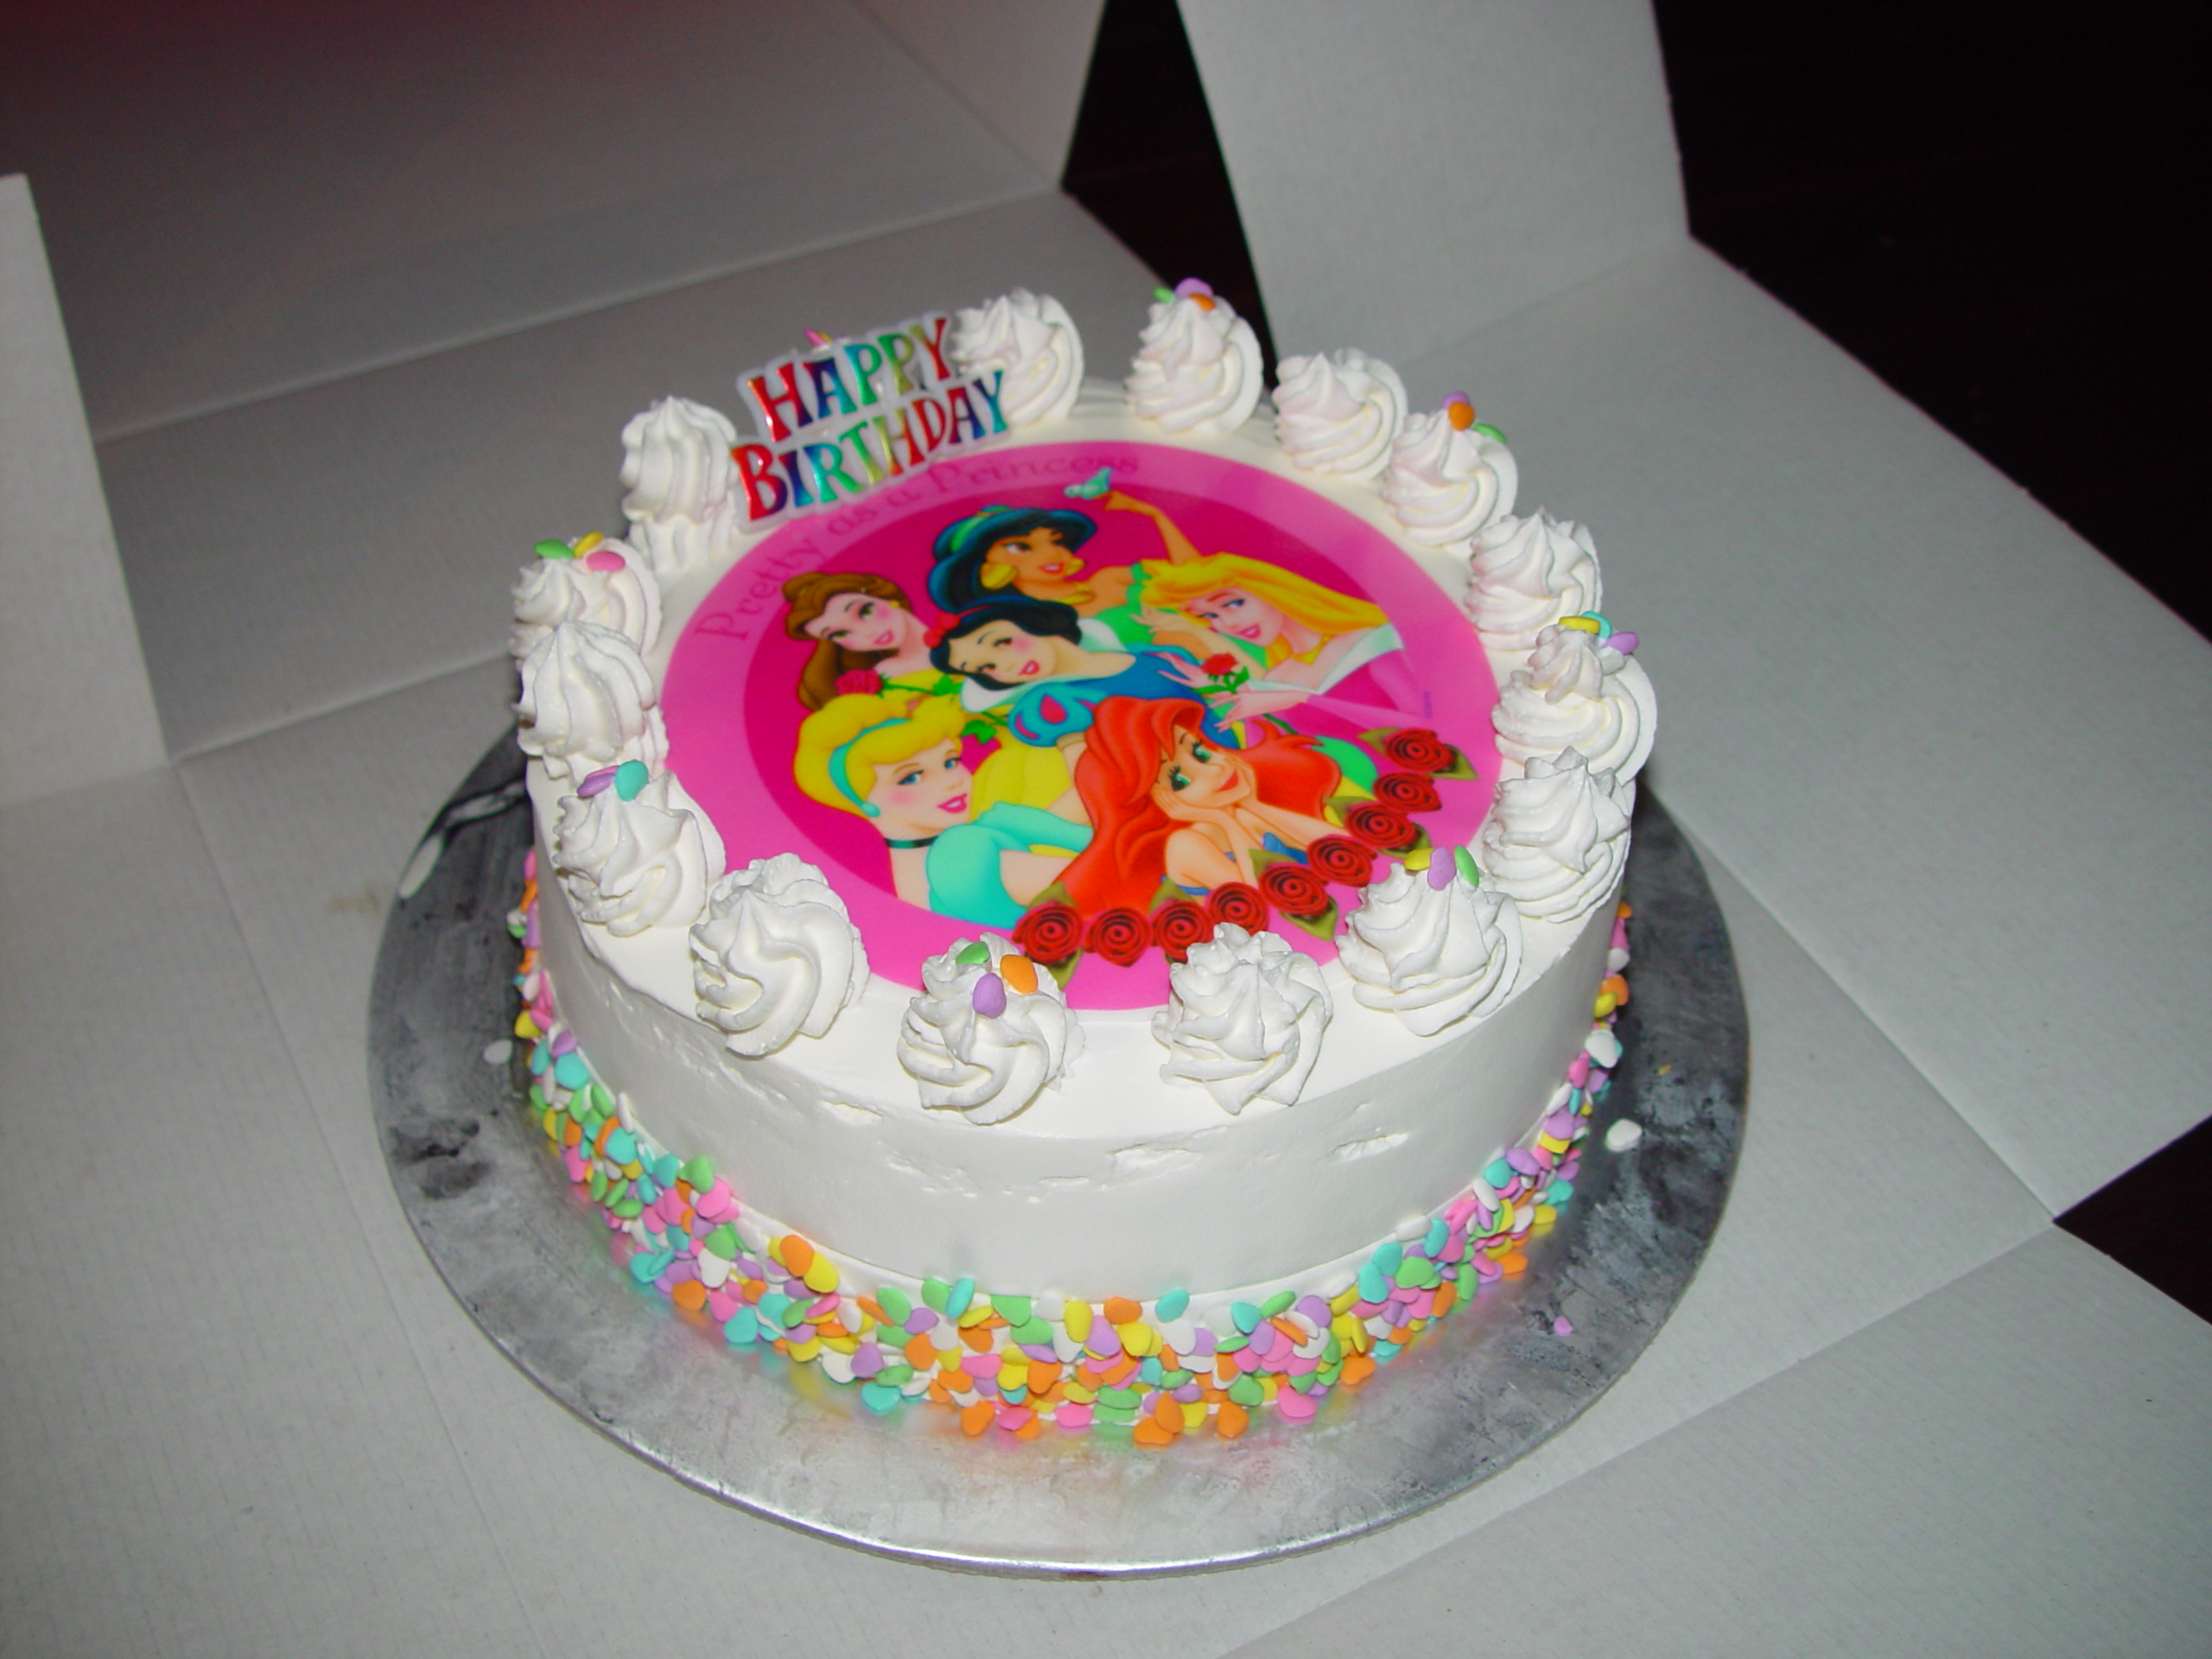 Birthday Cakes With Name Mahi ~ Cake images with name poonam prezup for